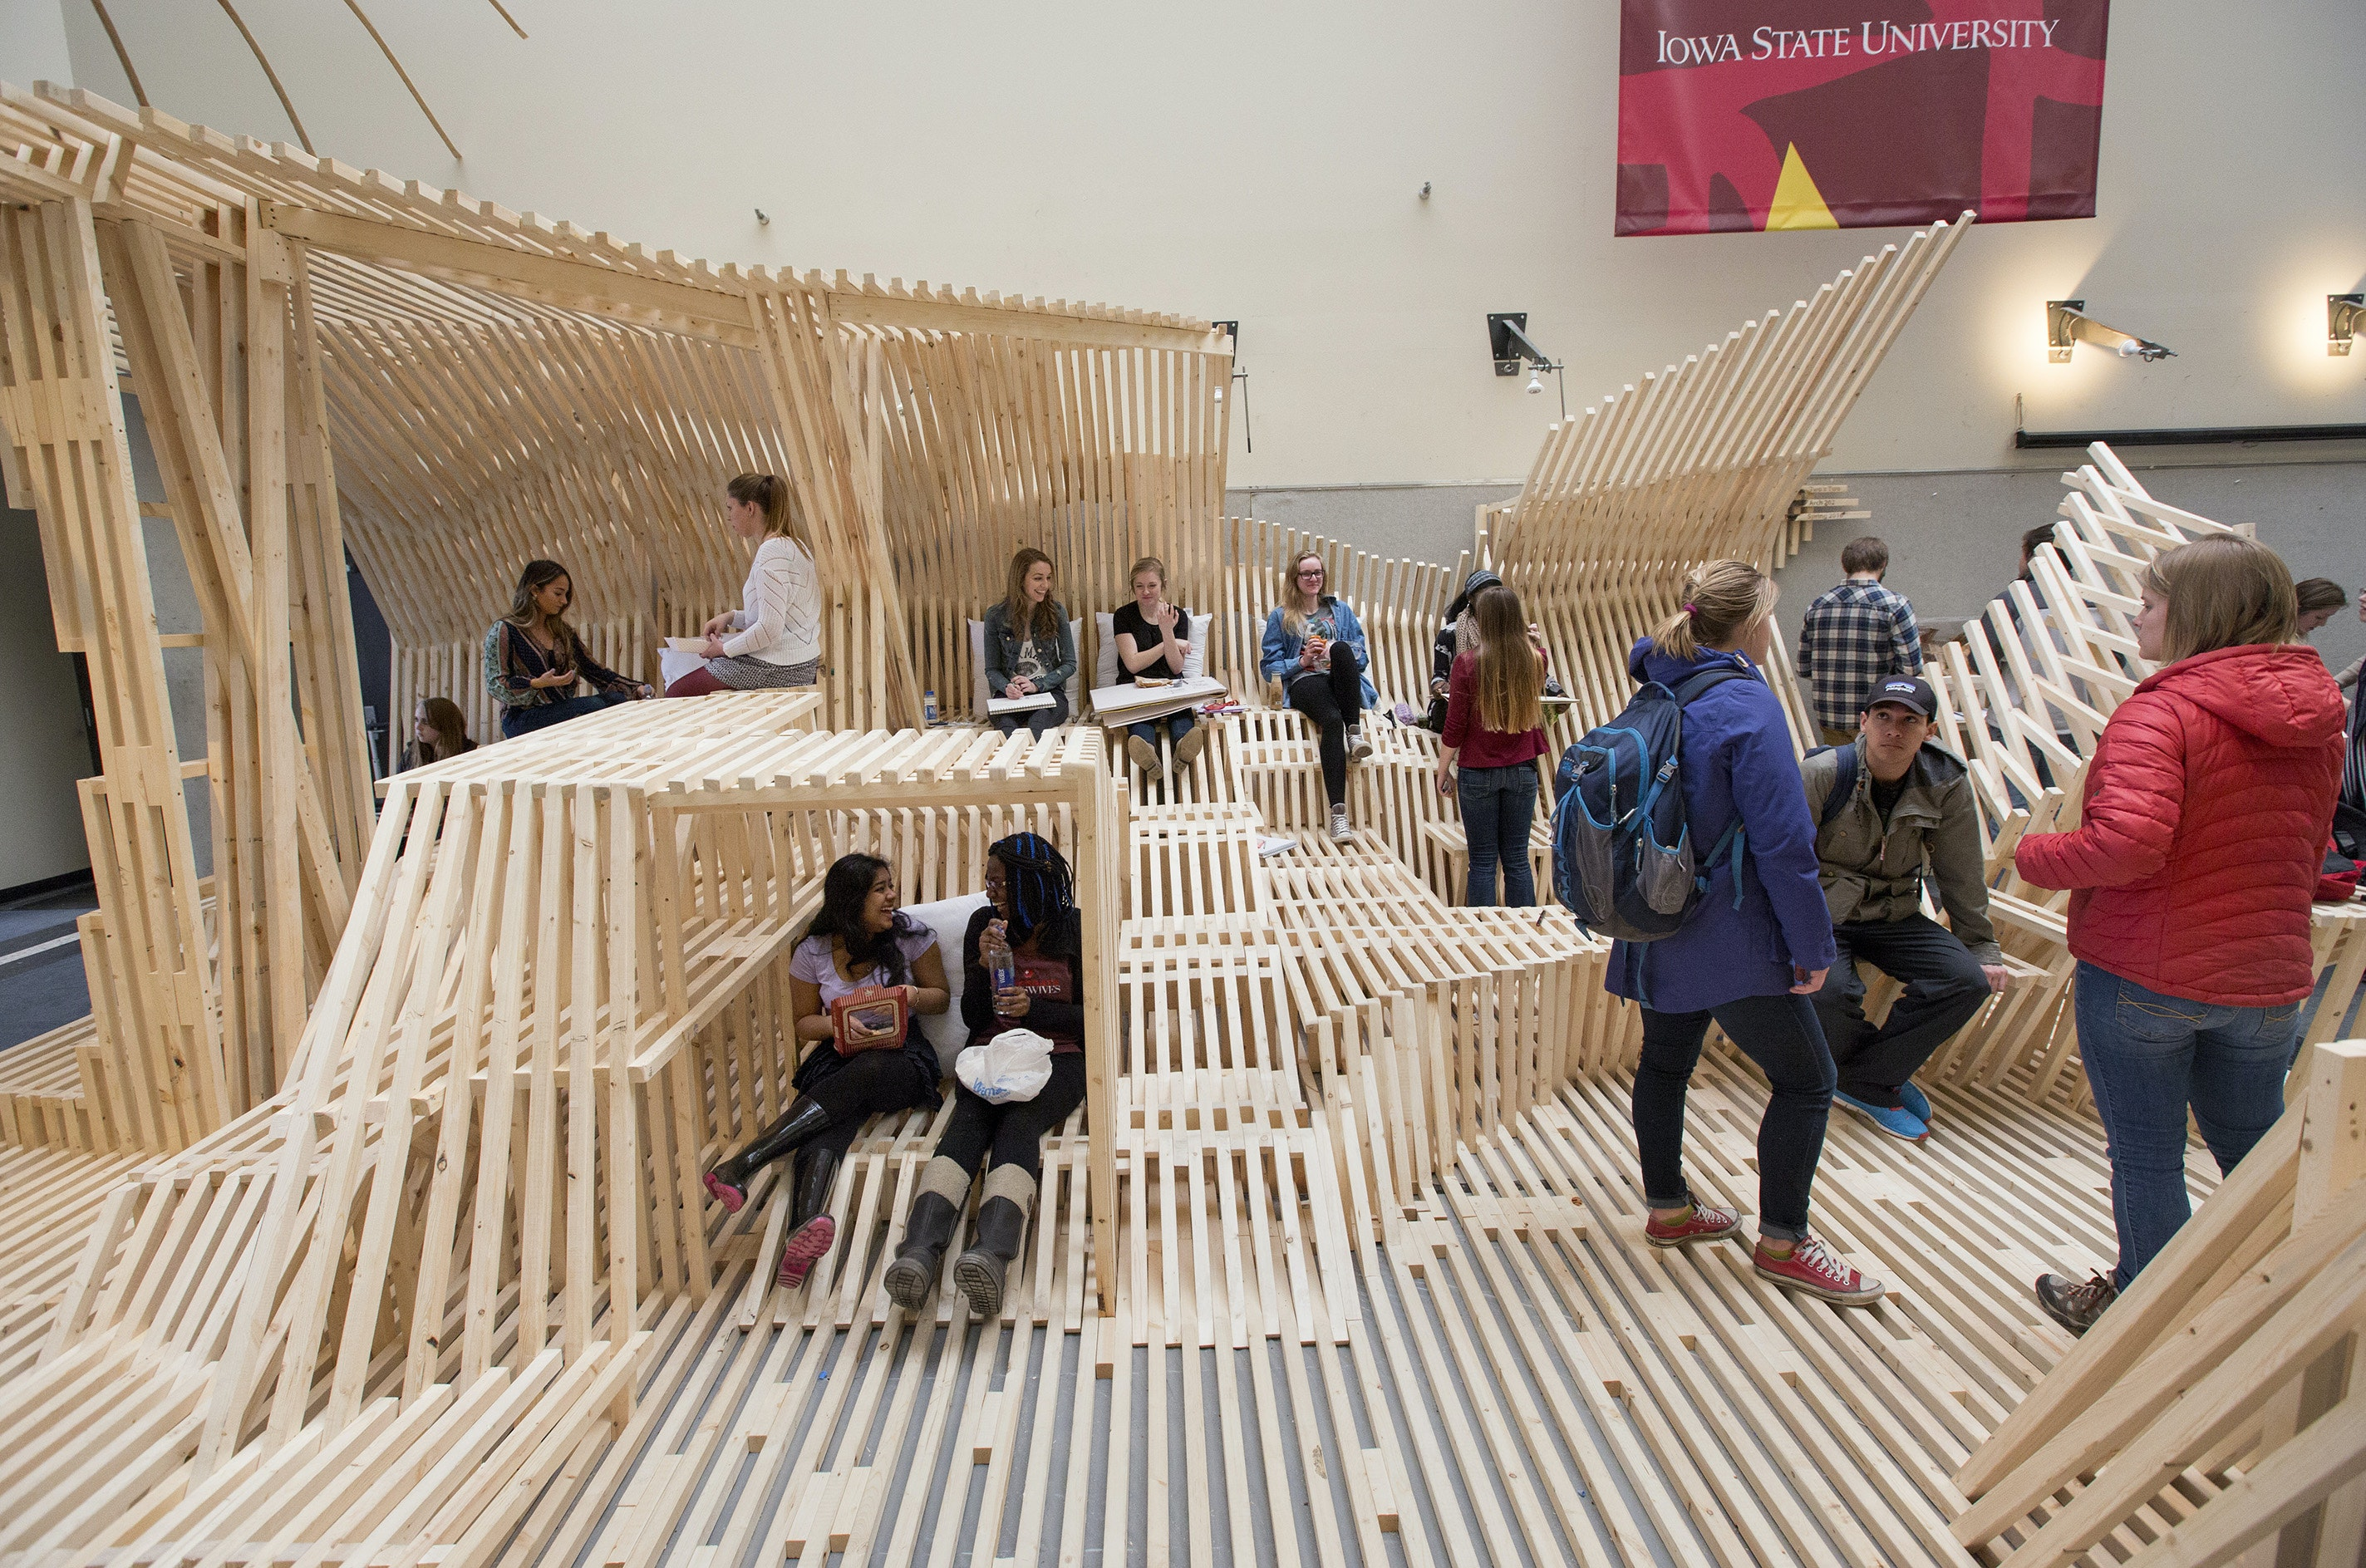 Architecture students' Dunescape-inspired design-build project transforms Iowa State University College of Design atrium